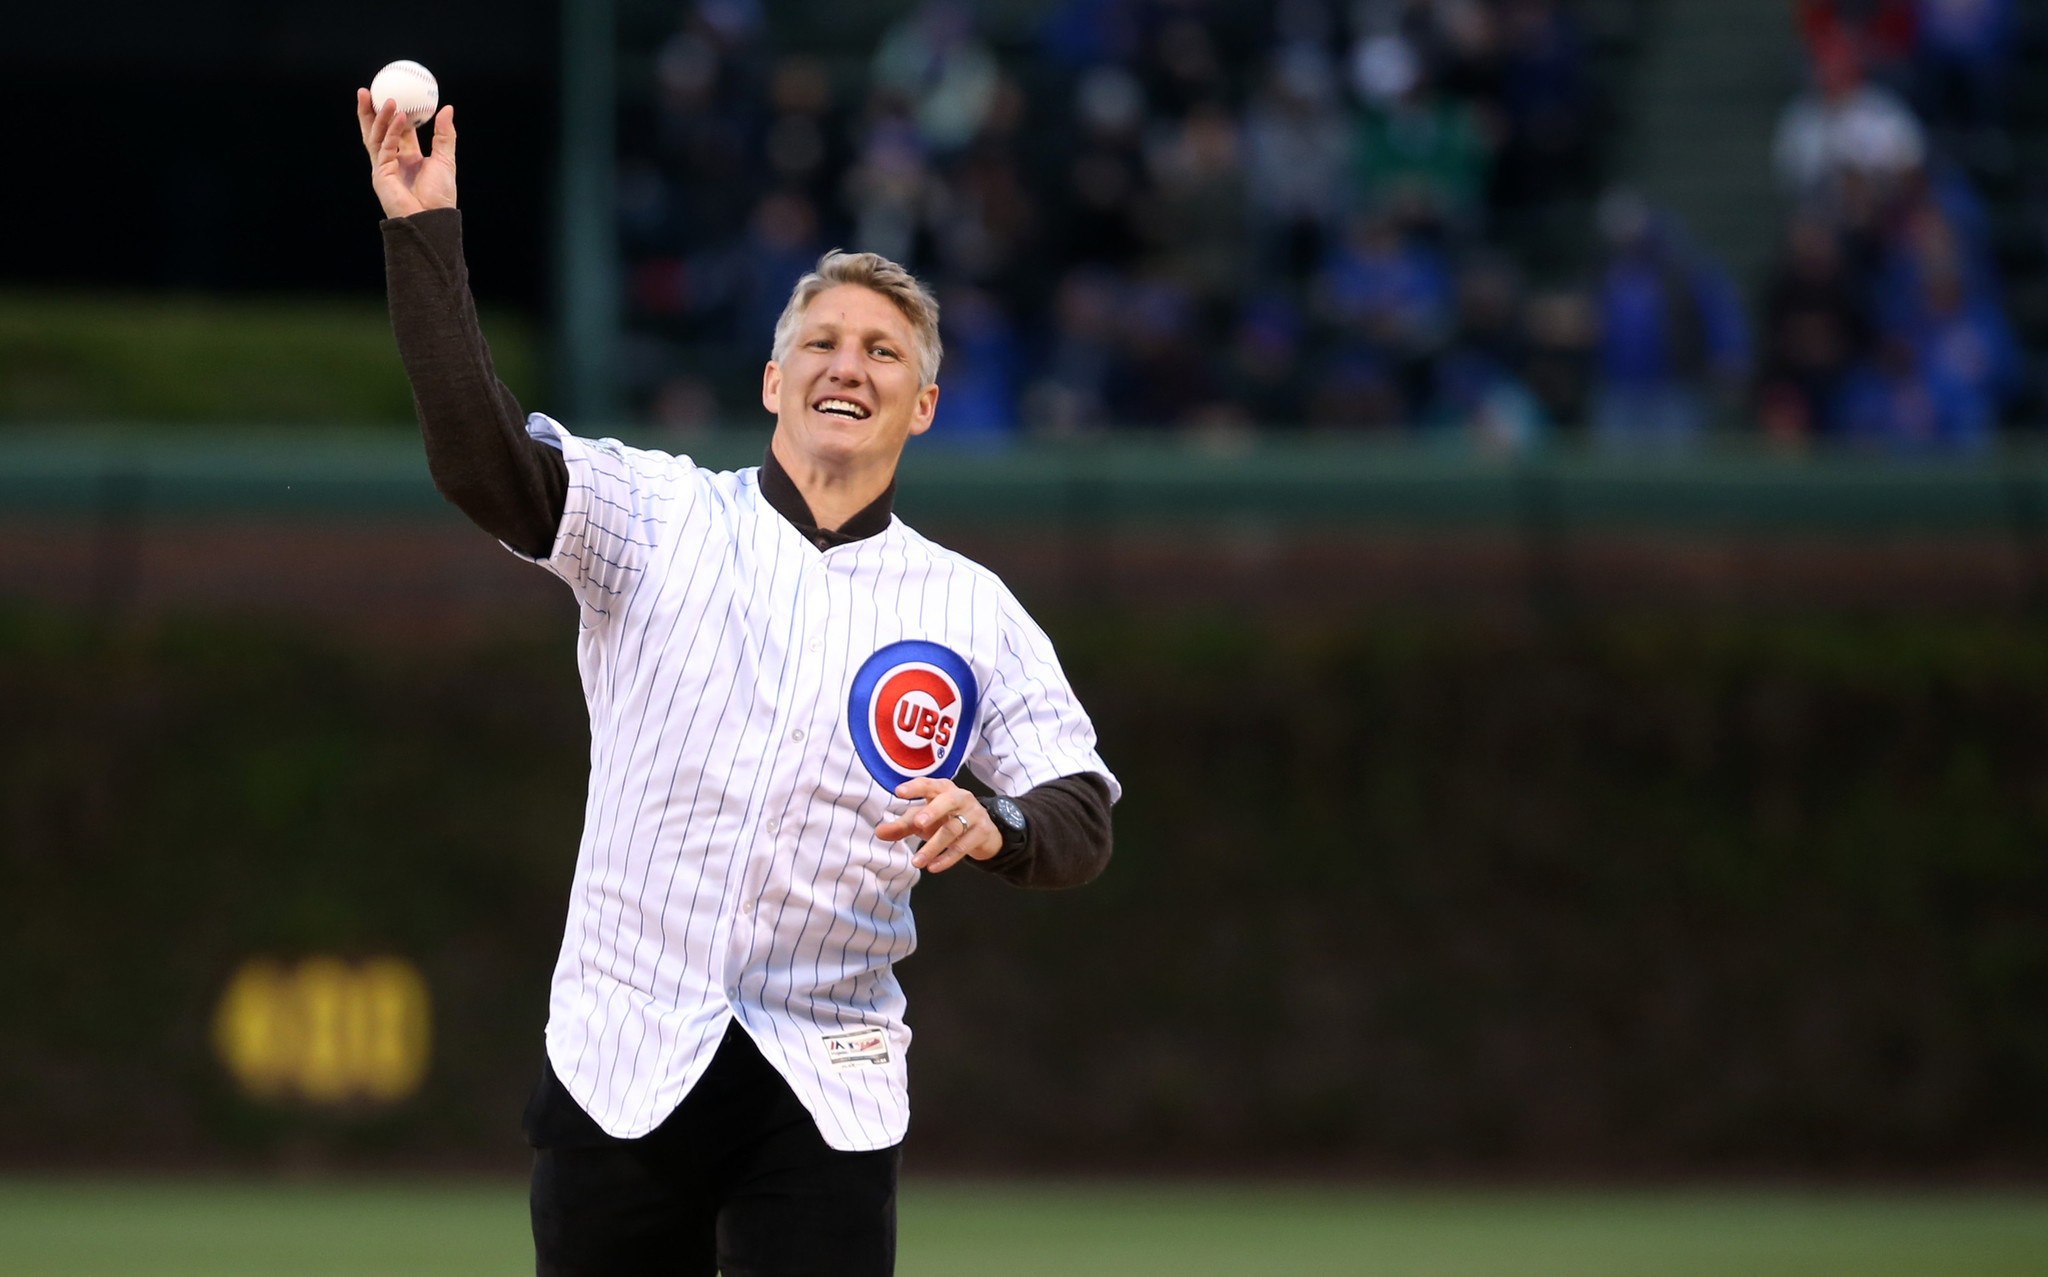 Bastian Schweinsteiger Ana Ivanovic make their Wrigley Field